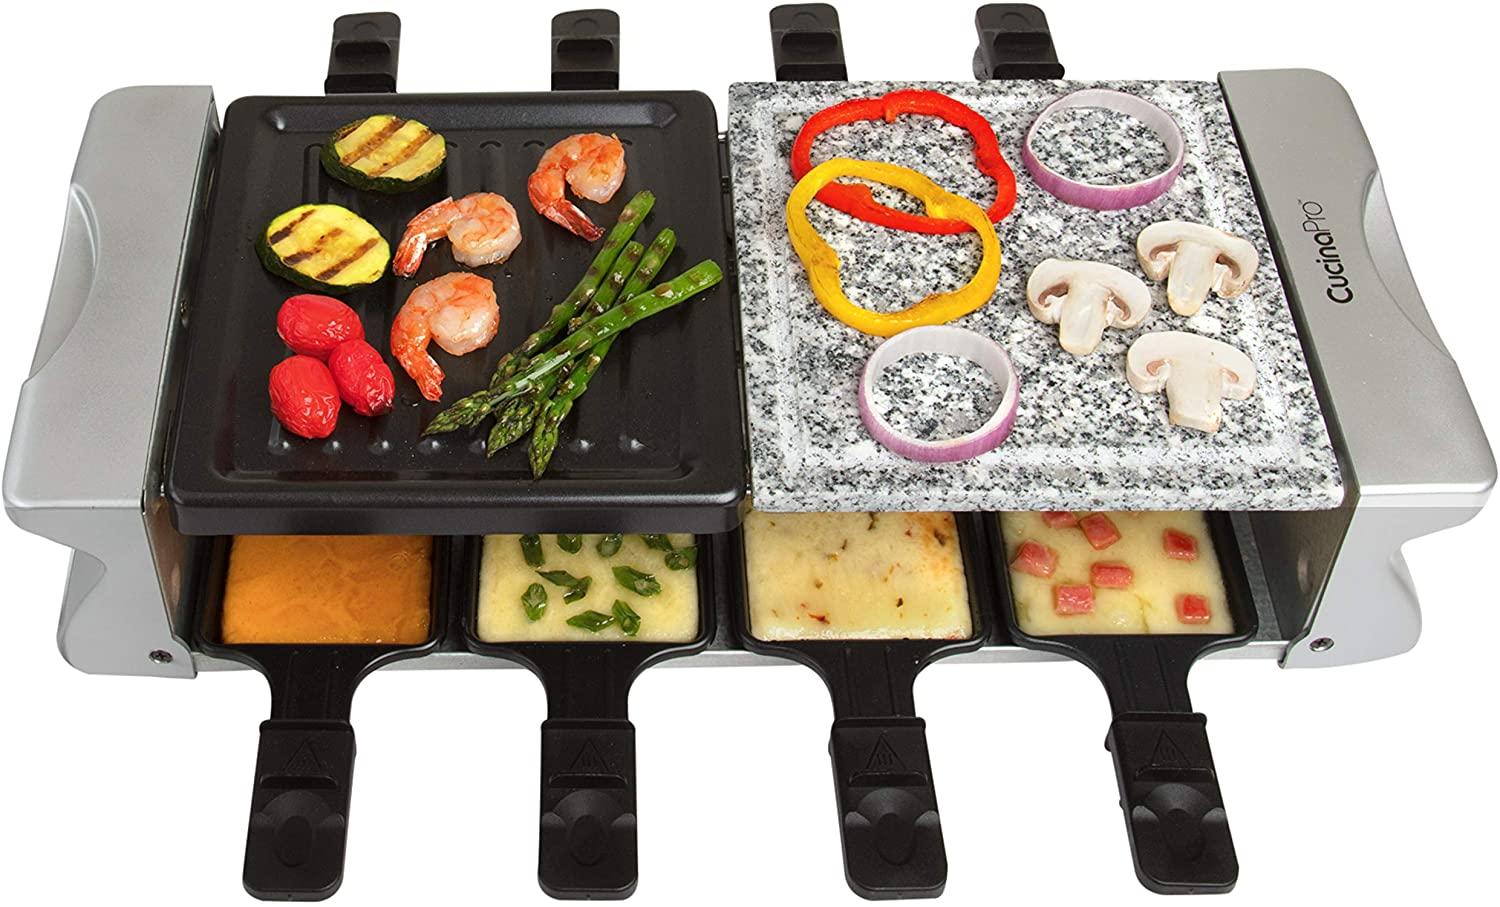 Dual Cheese Raclette Table Grill w Non-stick Grilling Plate and Cooking Stone- Deluxe 8 Person Electric Tabletop Cooker- Melt Cheese and Grill Meat and Vegetables at Once